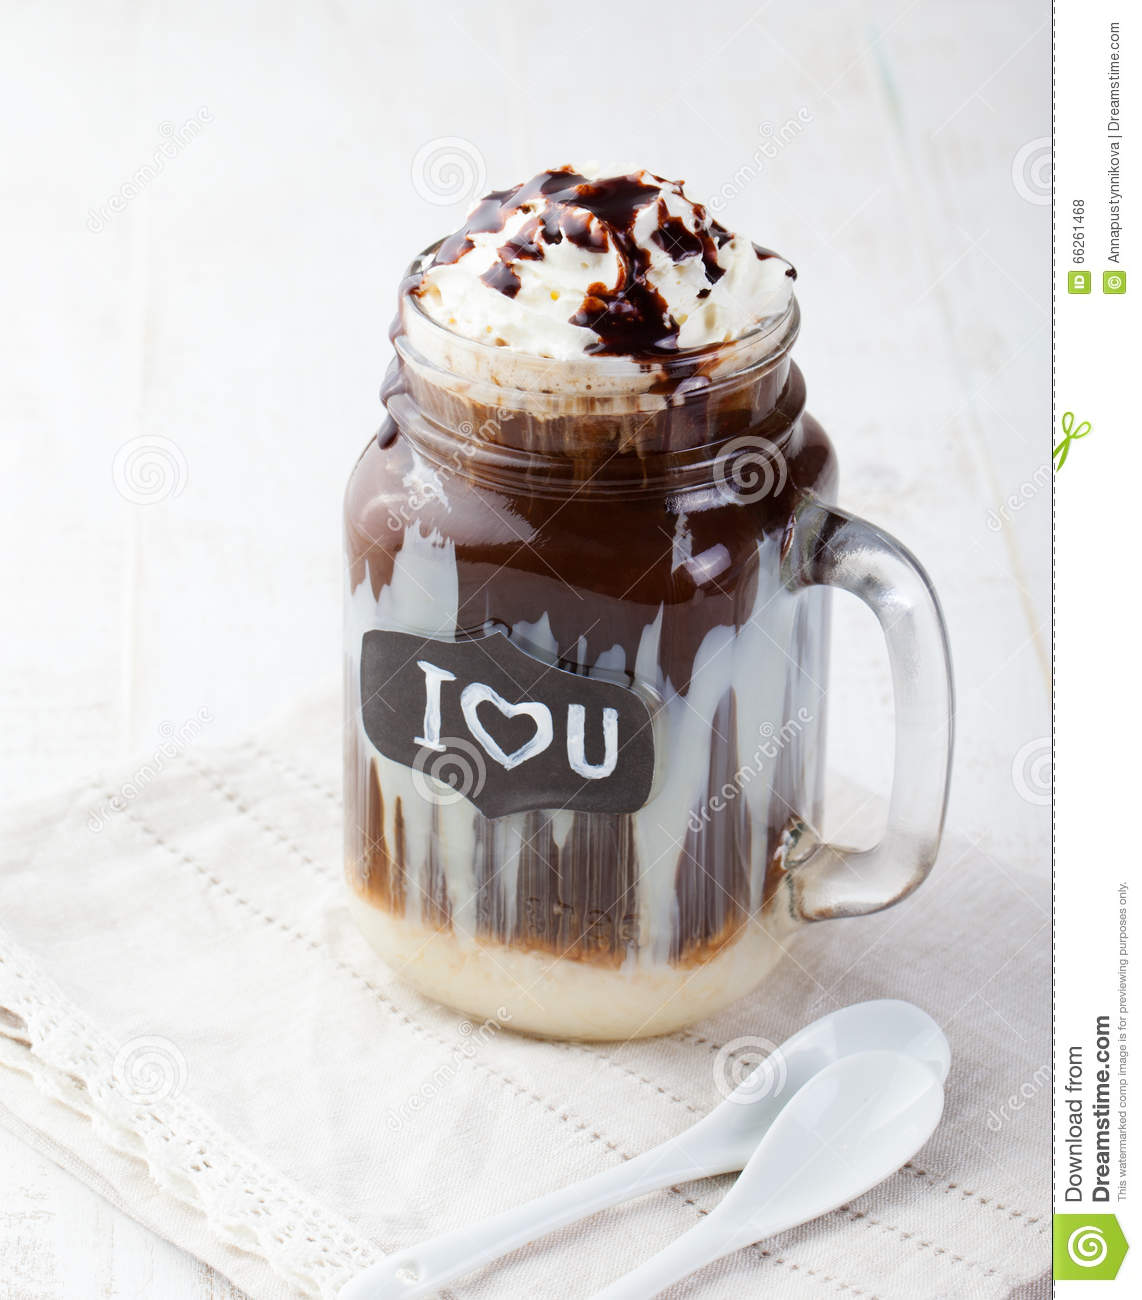 Iced Cold Coffee Frapuccino With Whipped Cream And